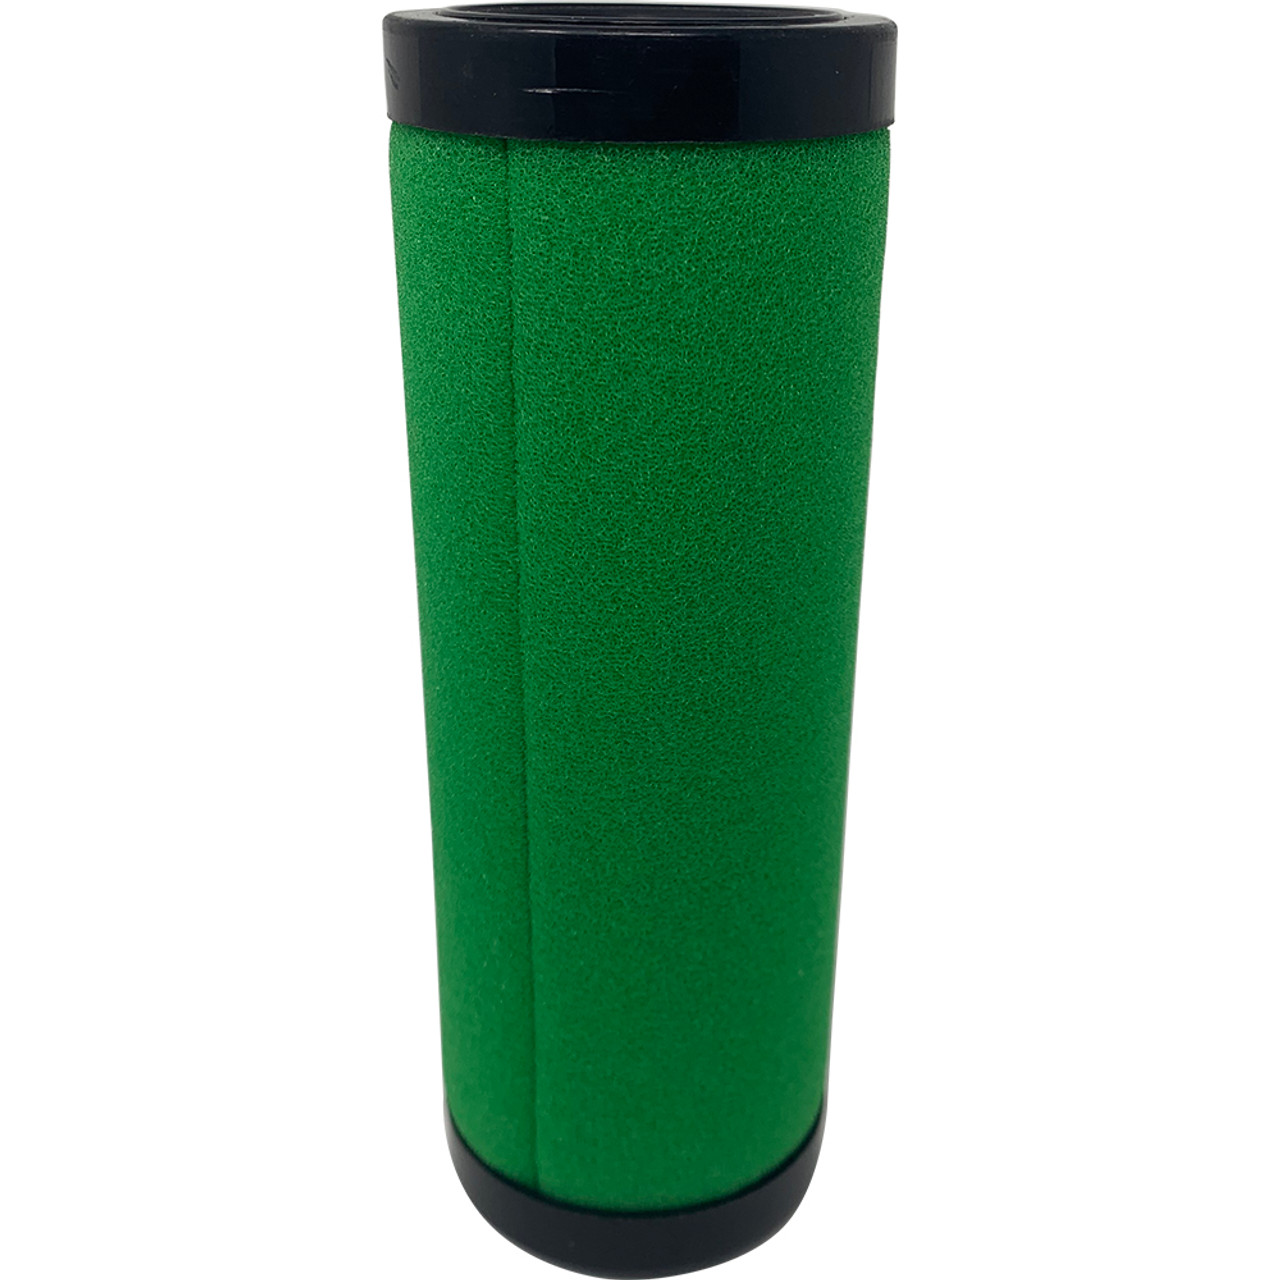 0.01 Micron Particulate 0.01 PPM Oil Removal Efficiency E5-24 Replacement Filter Element for Hankison HF5-24-6-DGL